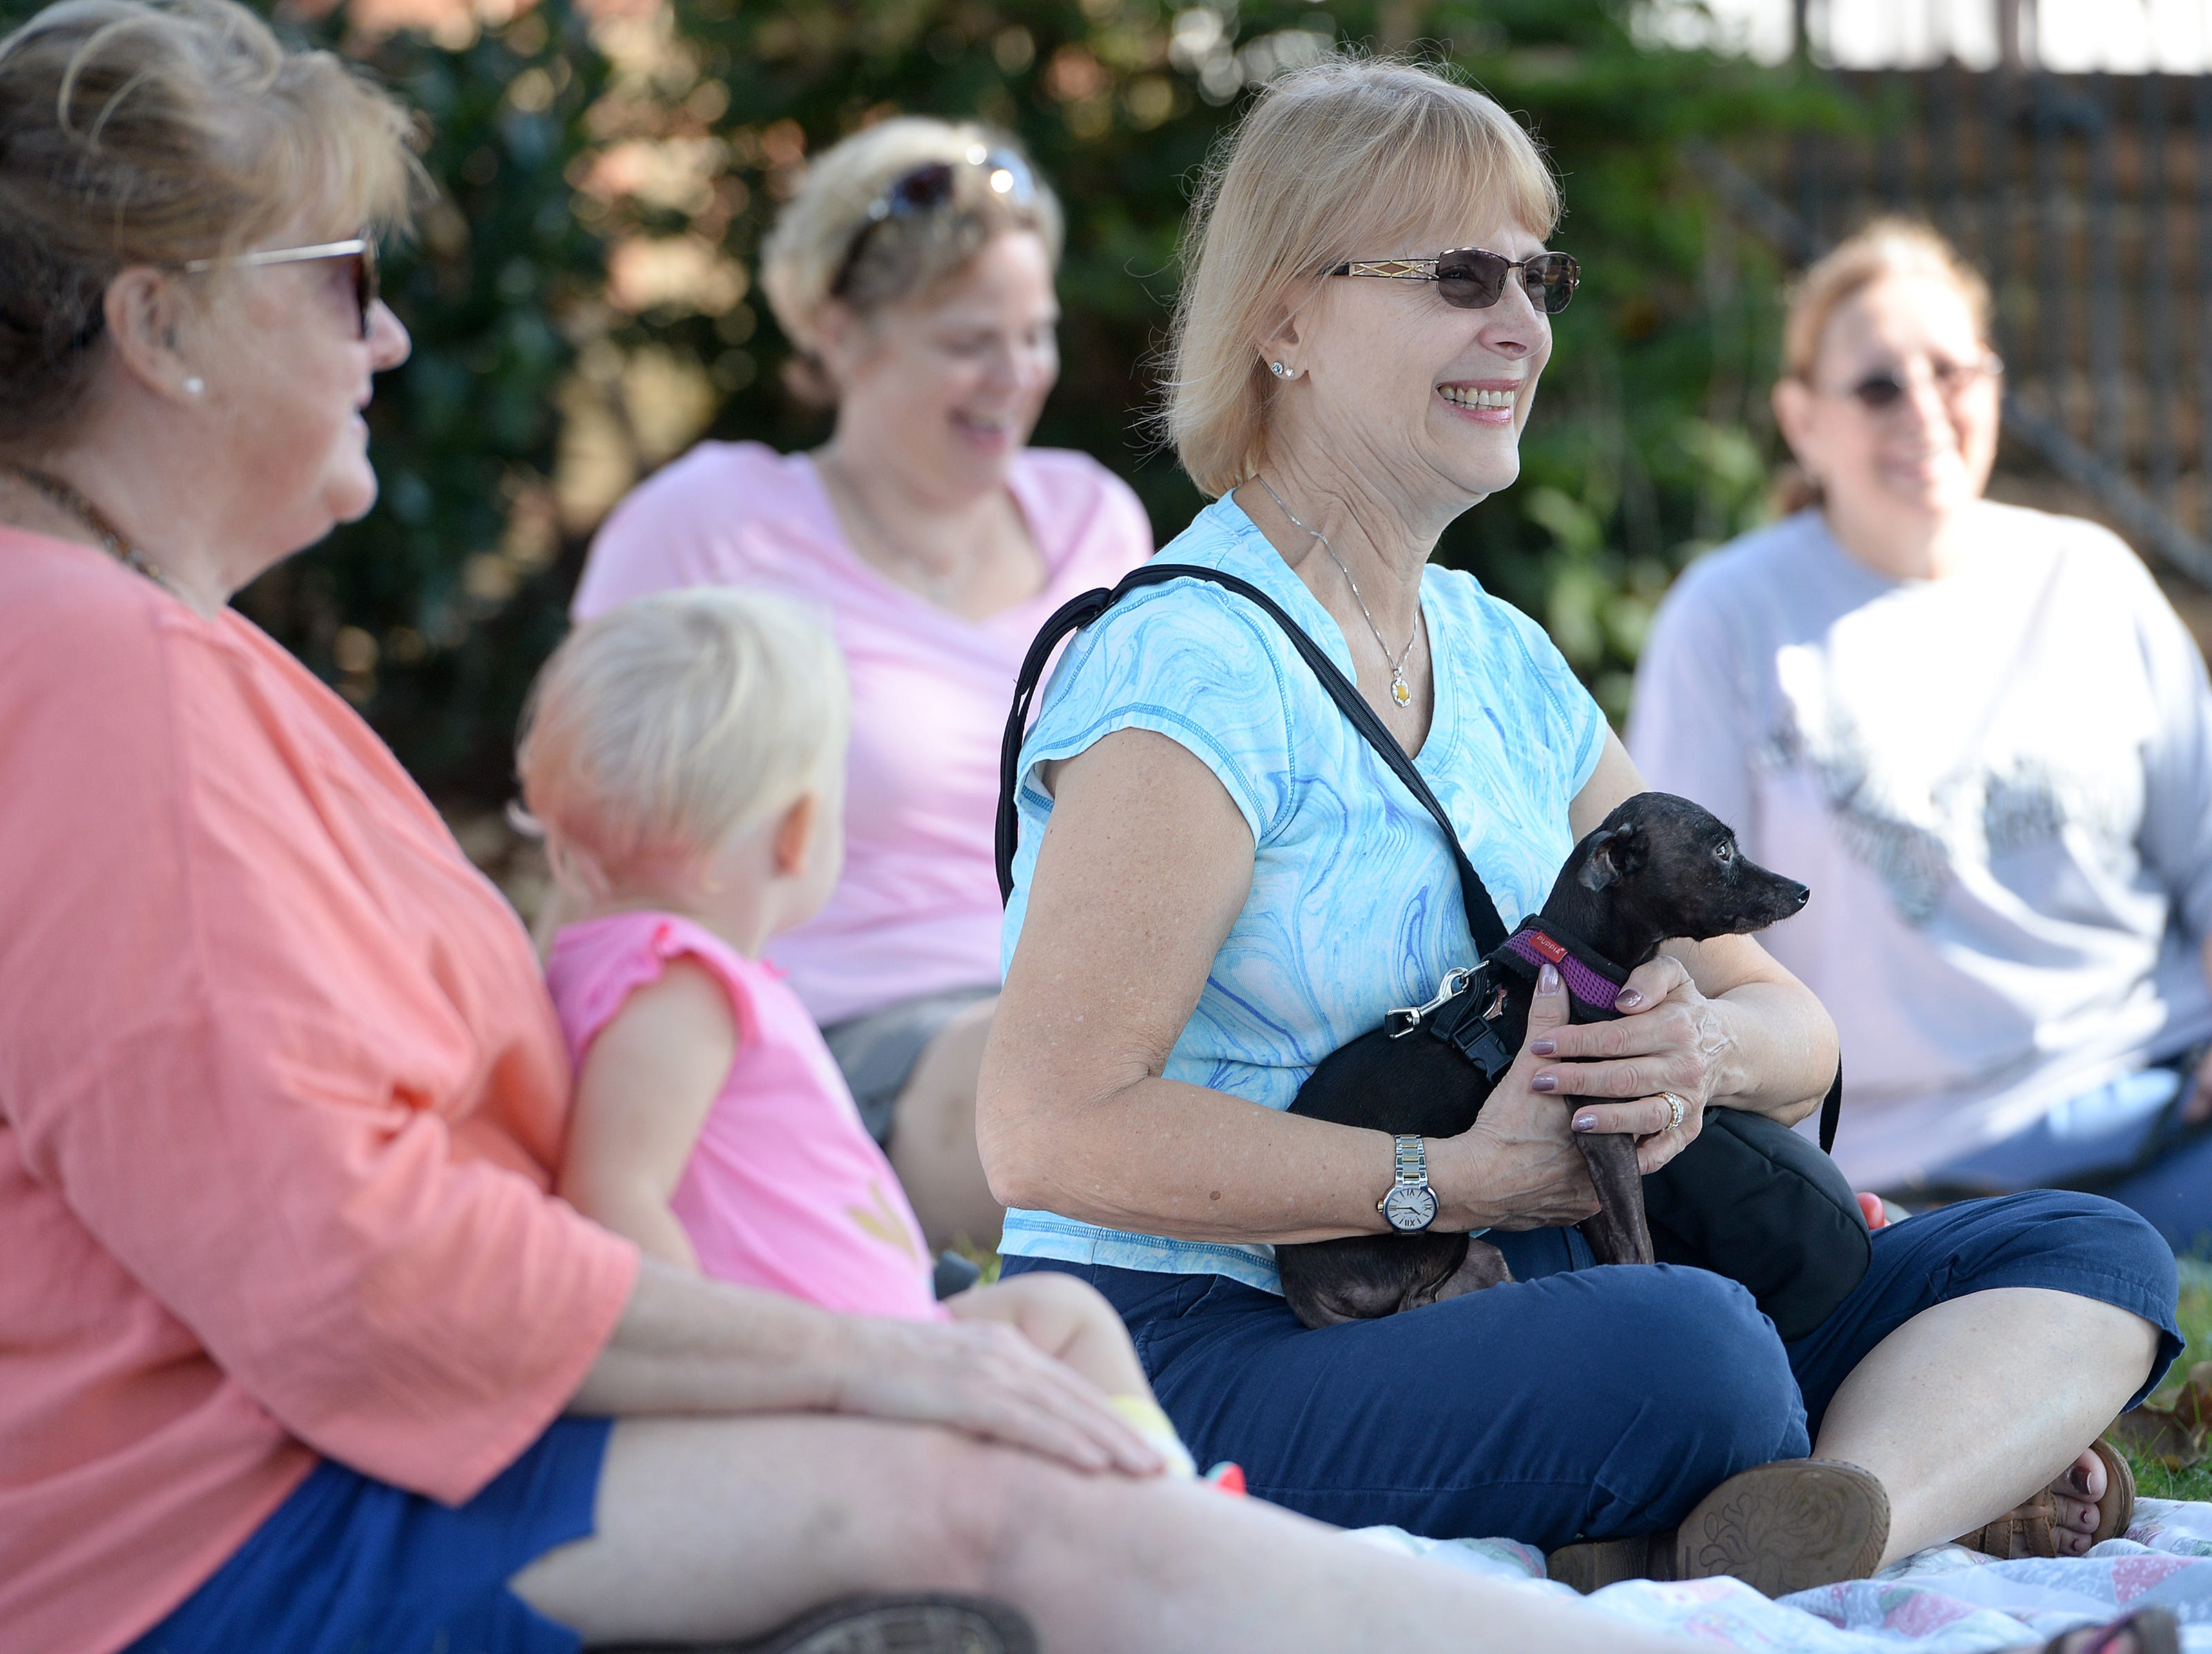 About 20 dogs were blessed during the 10th Annual Blessing of the Pets at Mills River Presbyterian Church on Sept. 8, 2018.